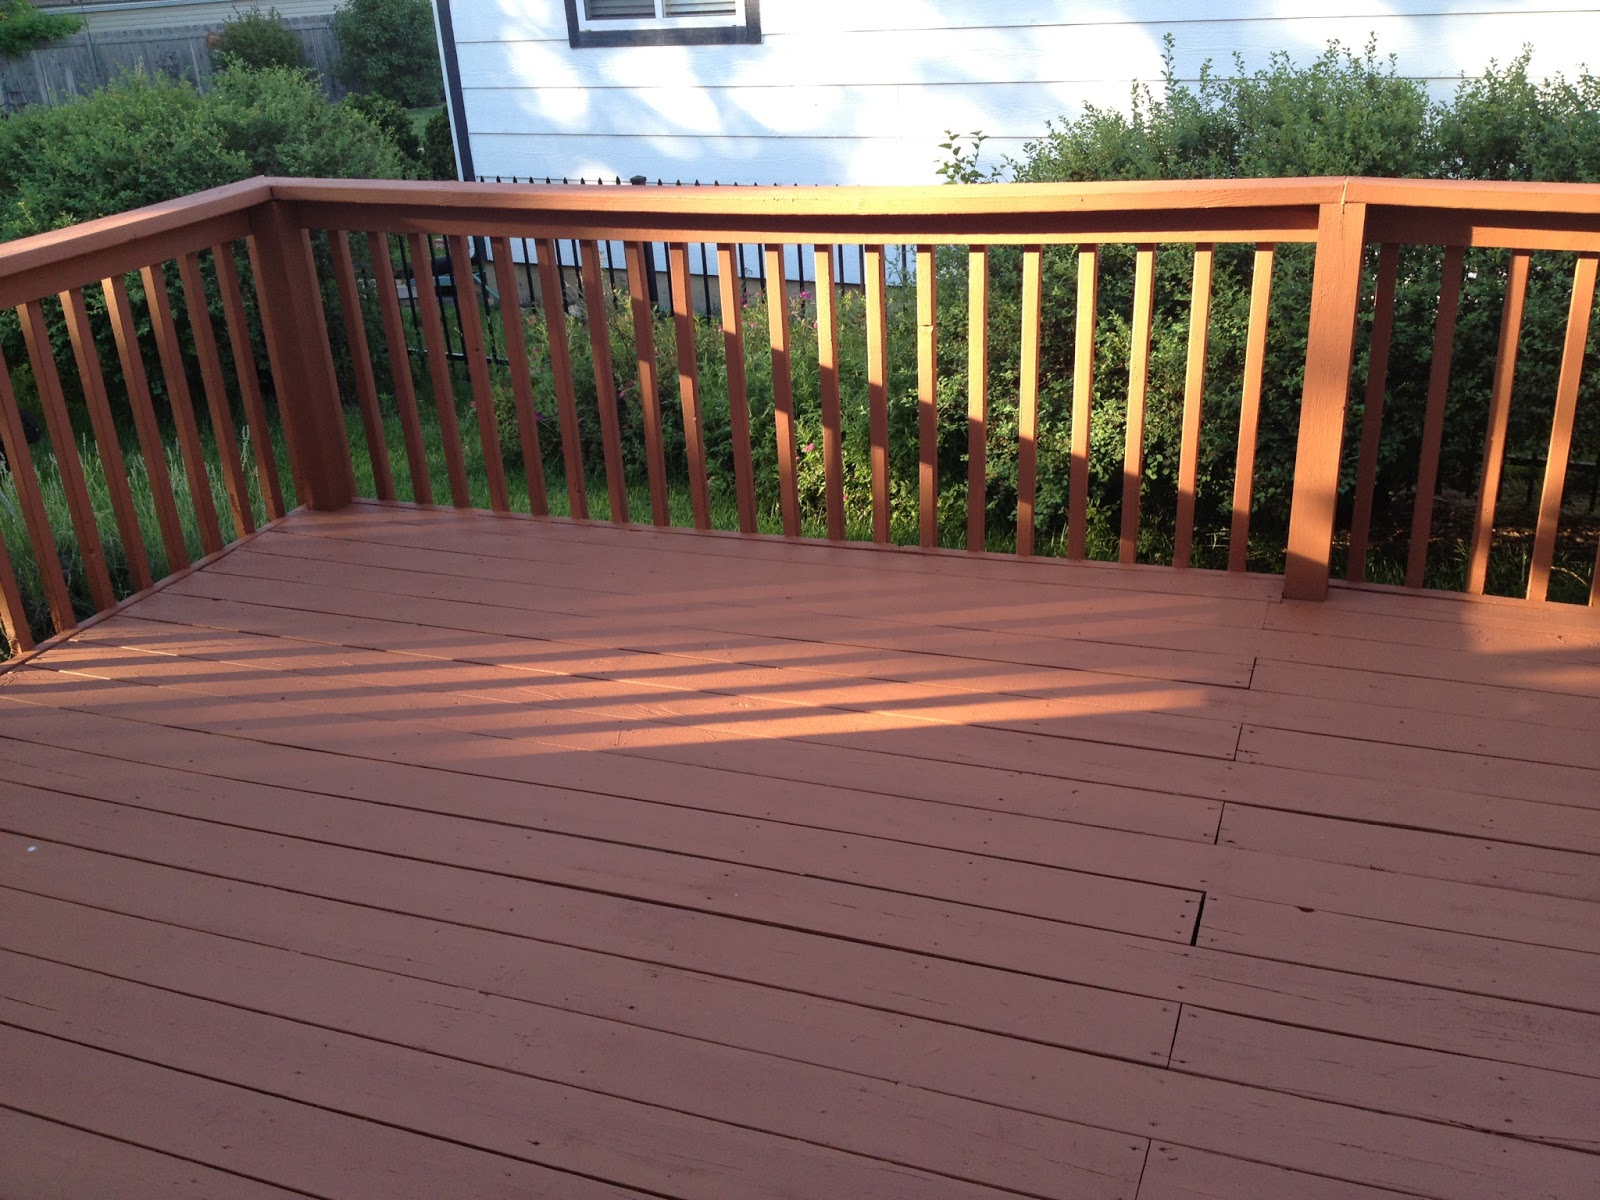 Behr Deck Over Review | Home Depot Deck Over Reviews | Behr Deck Over